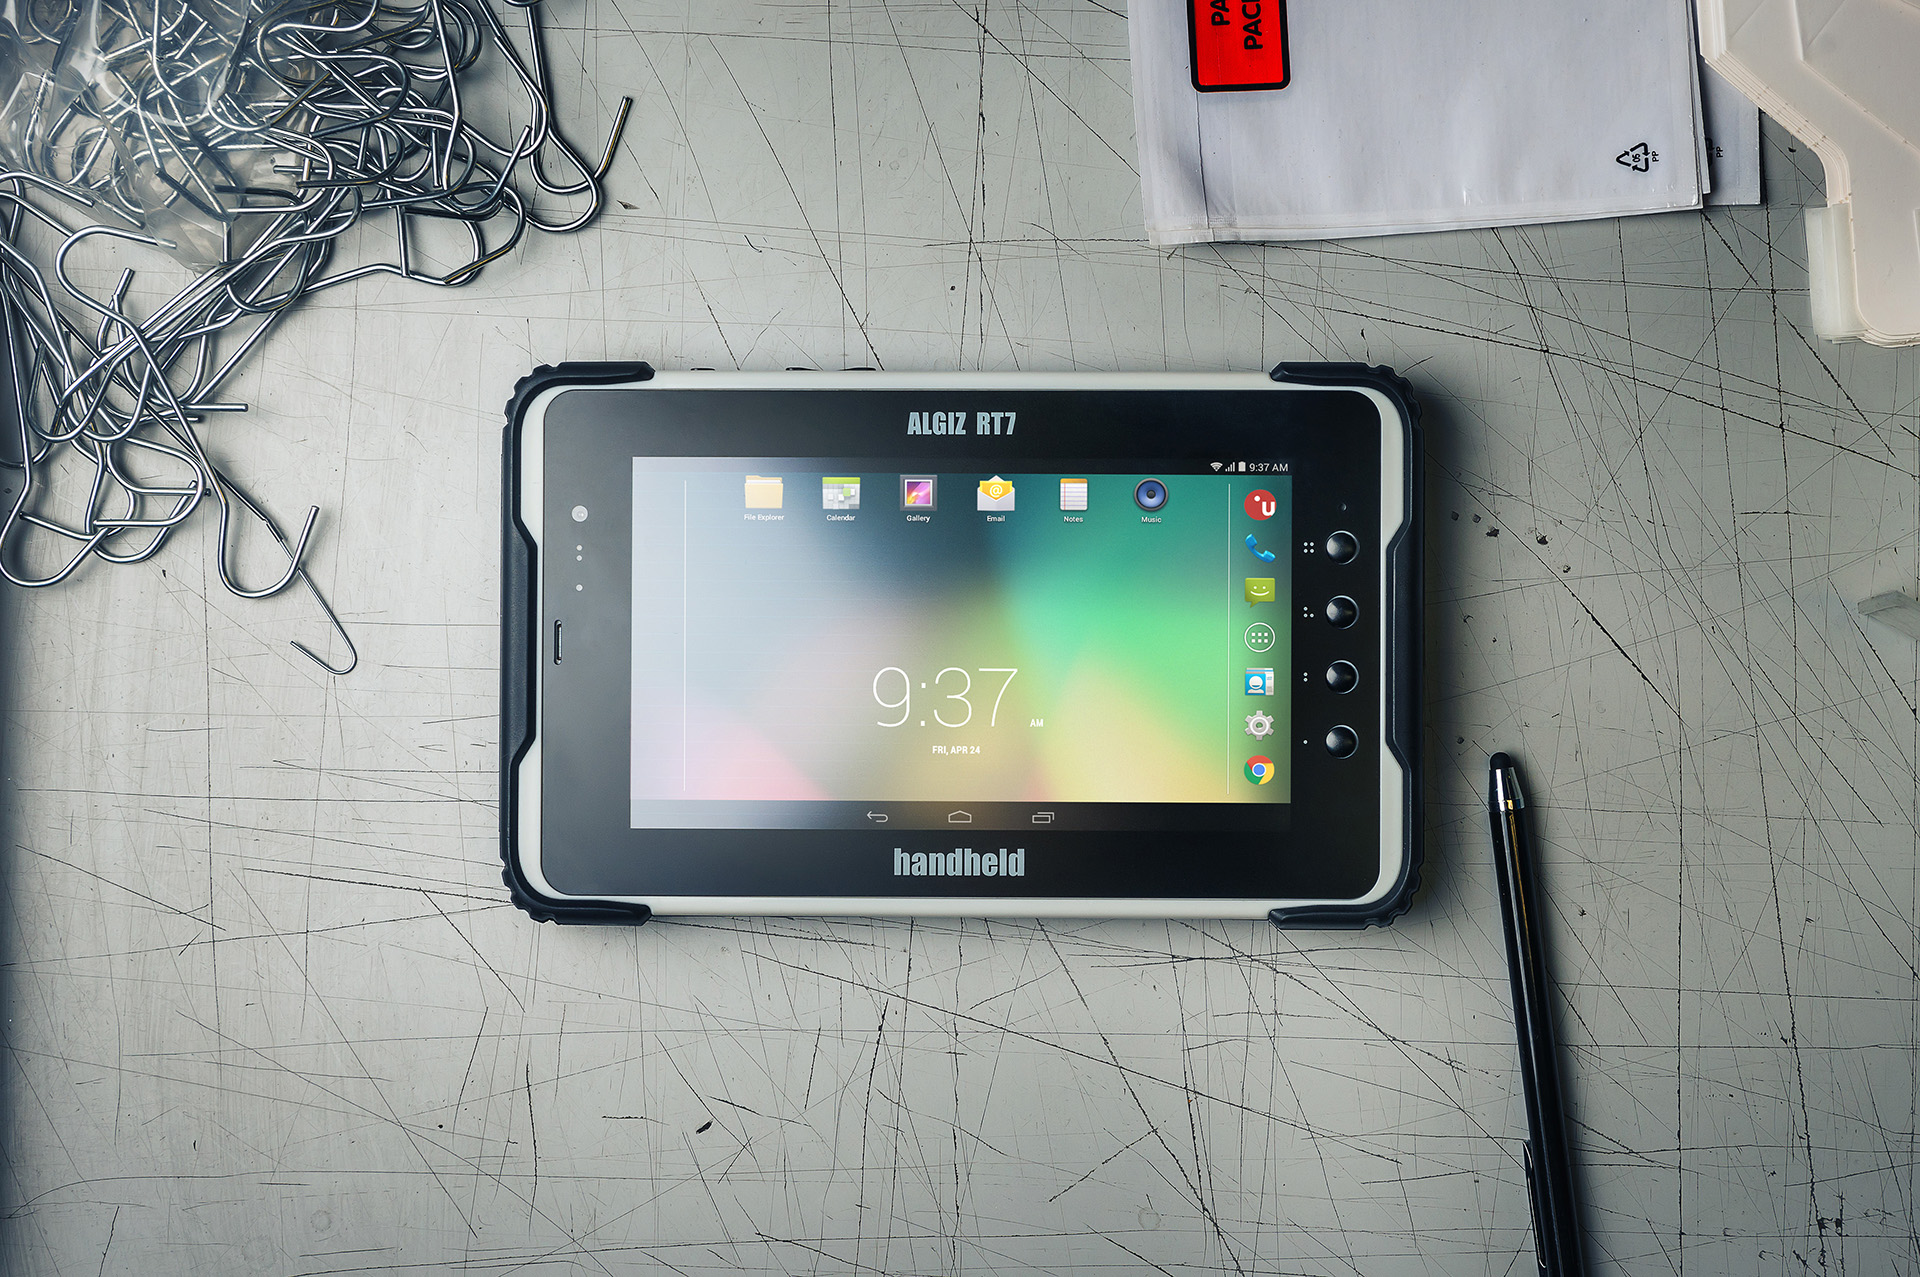 ALGIZ-RT7-rugged-tablet-Android-data-collector.jpg